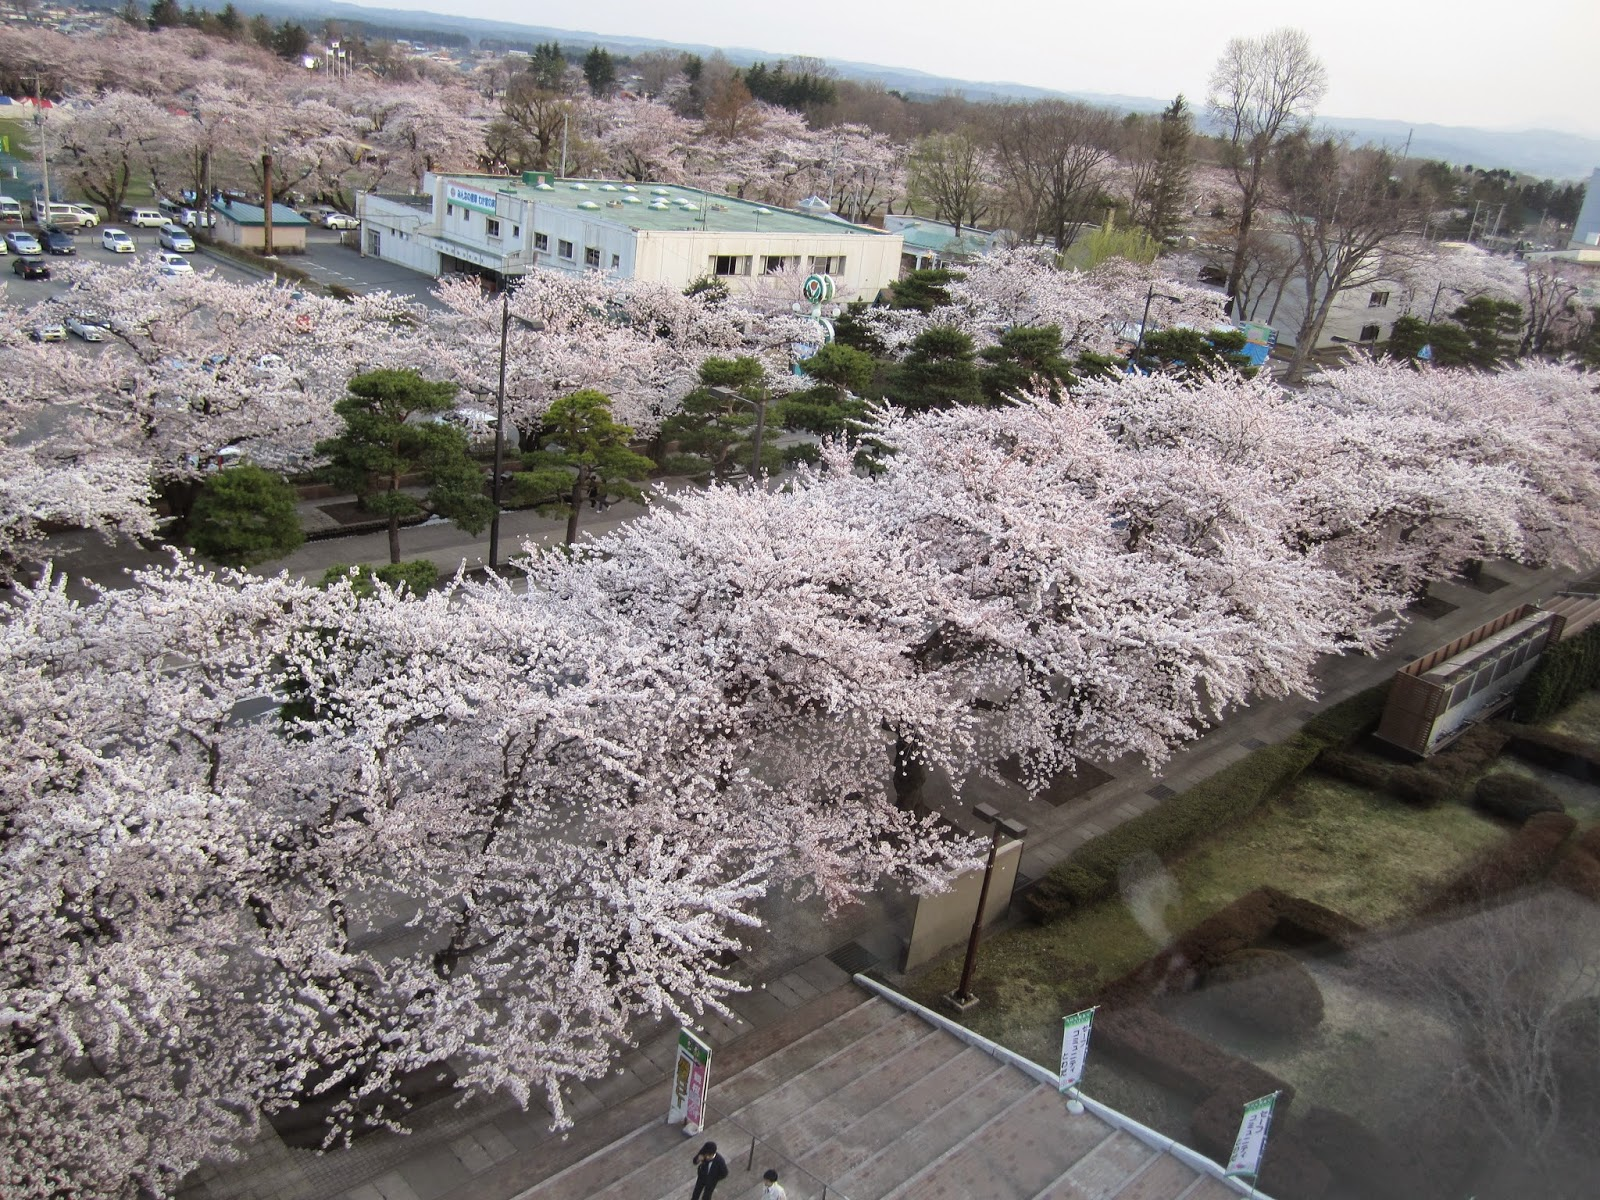 Sakura Cherry Blossom Viewing Area Towada Spring Festival 桜展望台 十和田市 春まつり